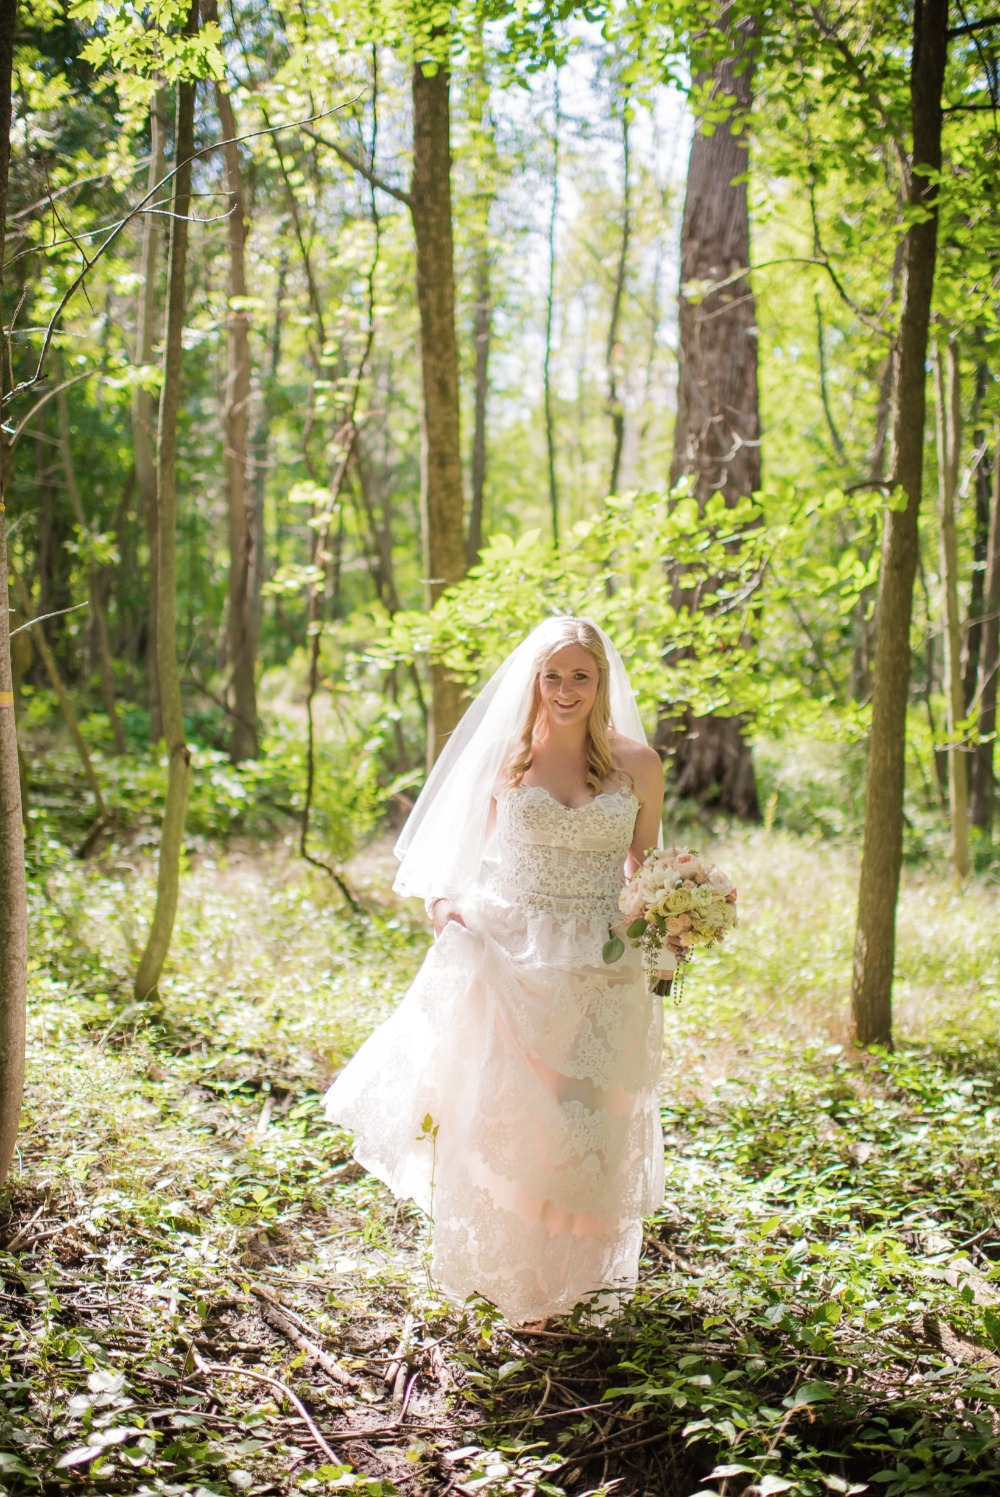 Woodsy bridal portrait idea